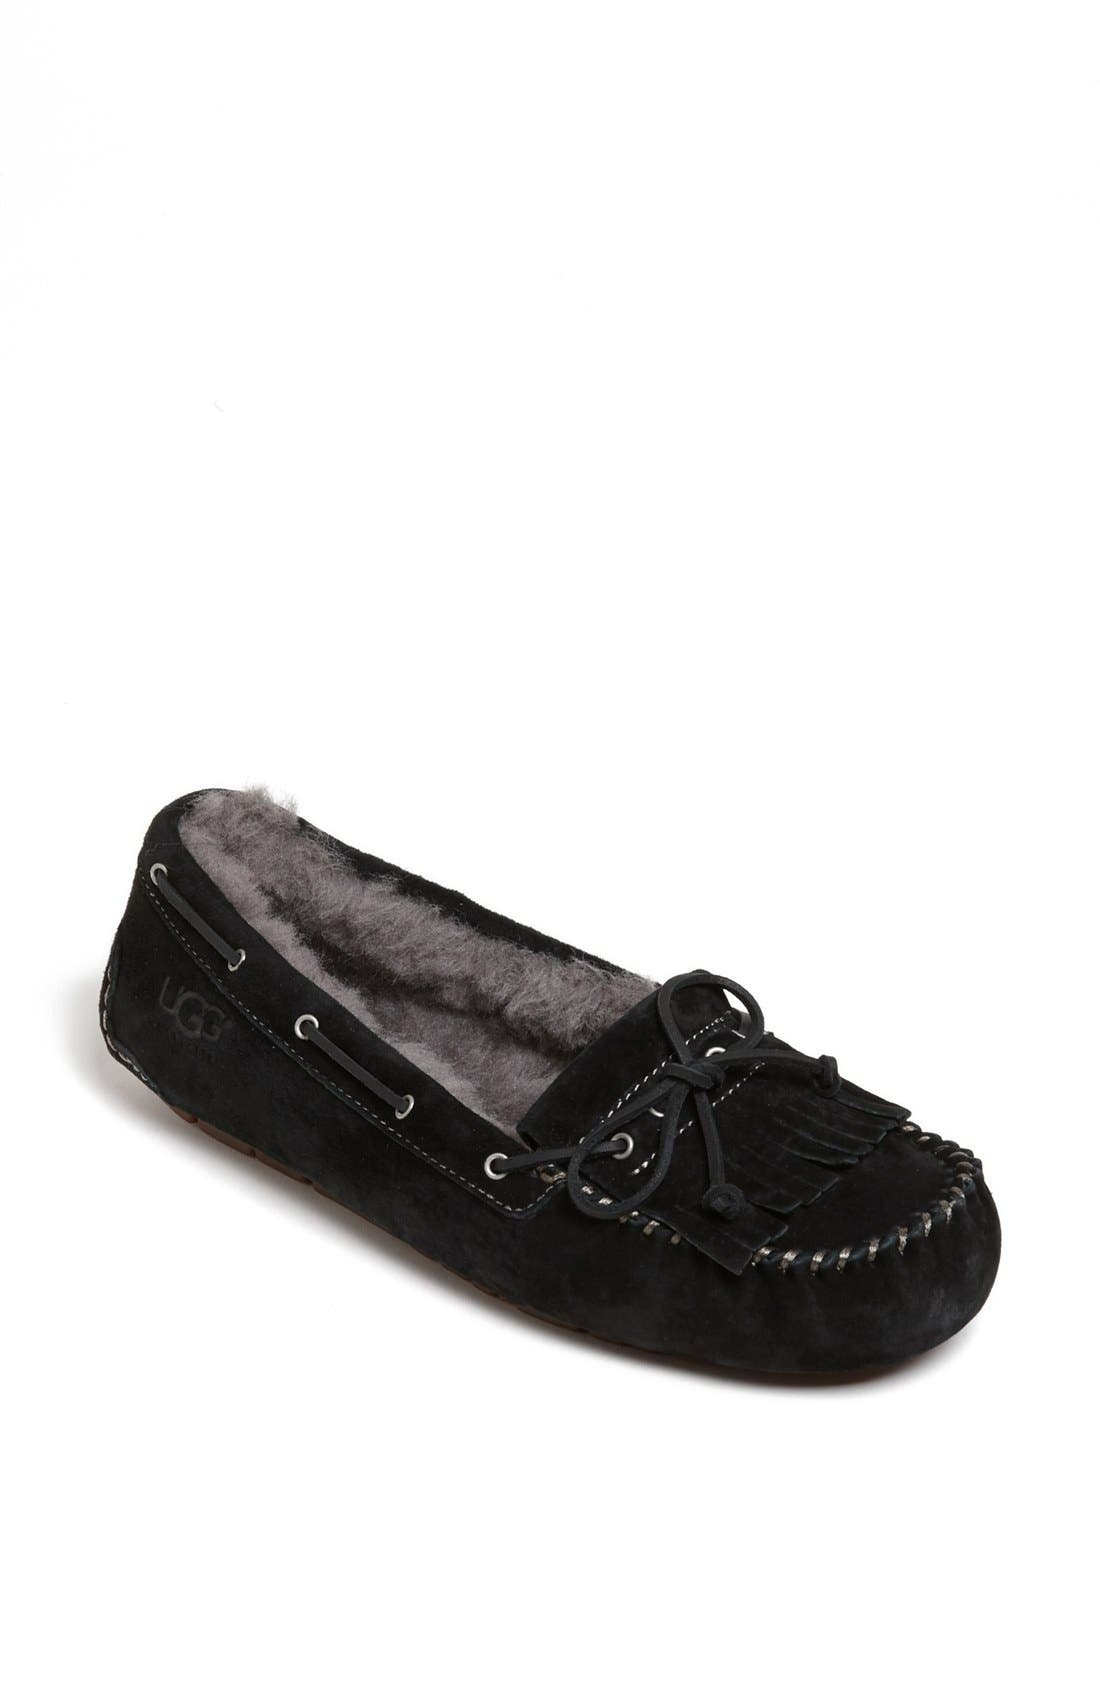 Main Image - UGG® Australia 'Mandy' Slipper (Women)